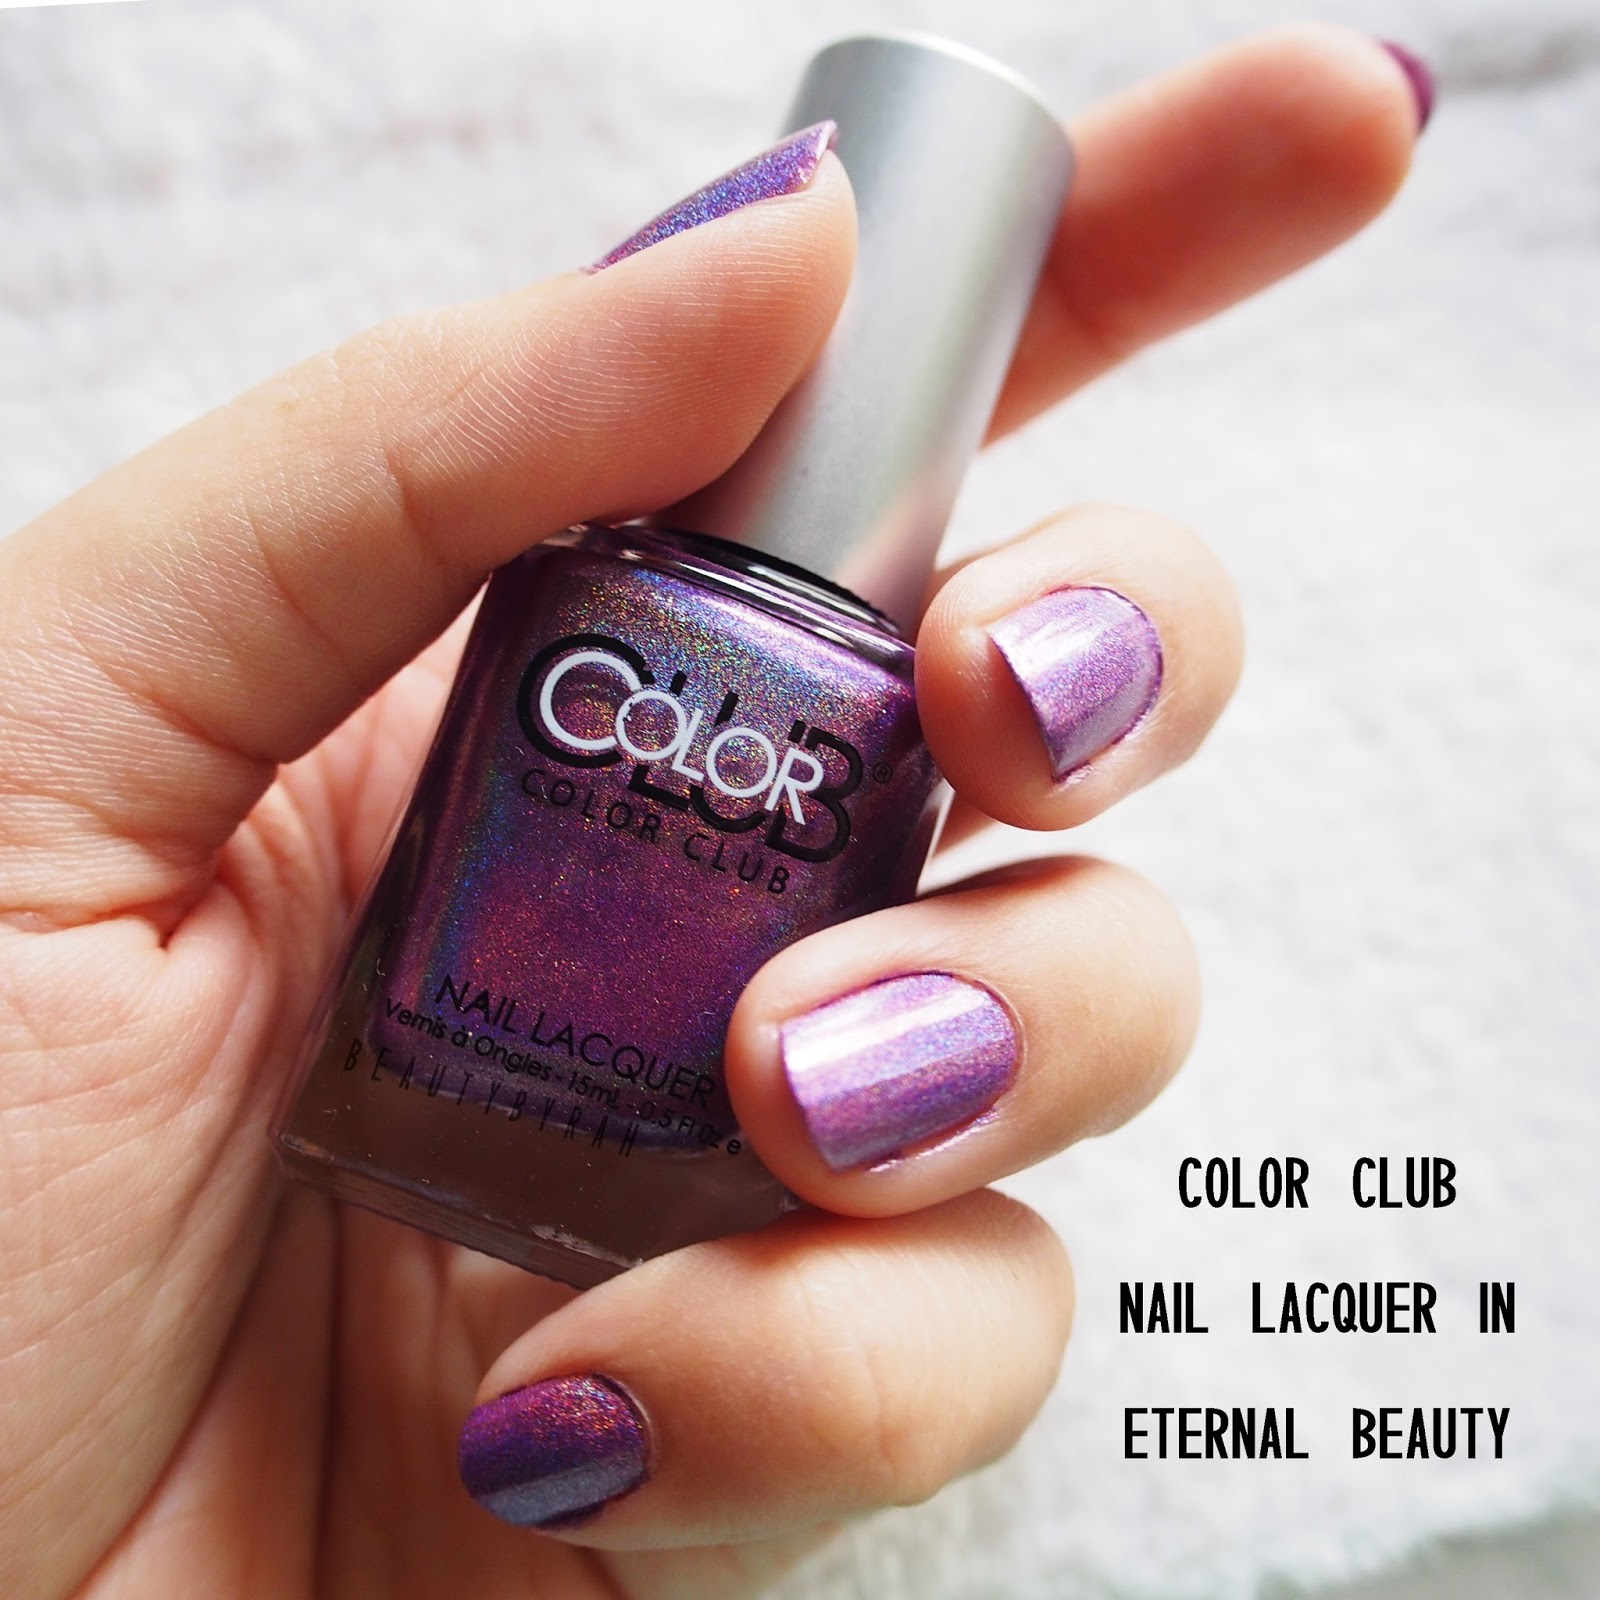 Colour Club Nail Lacquer In Eternal Beauty